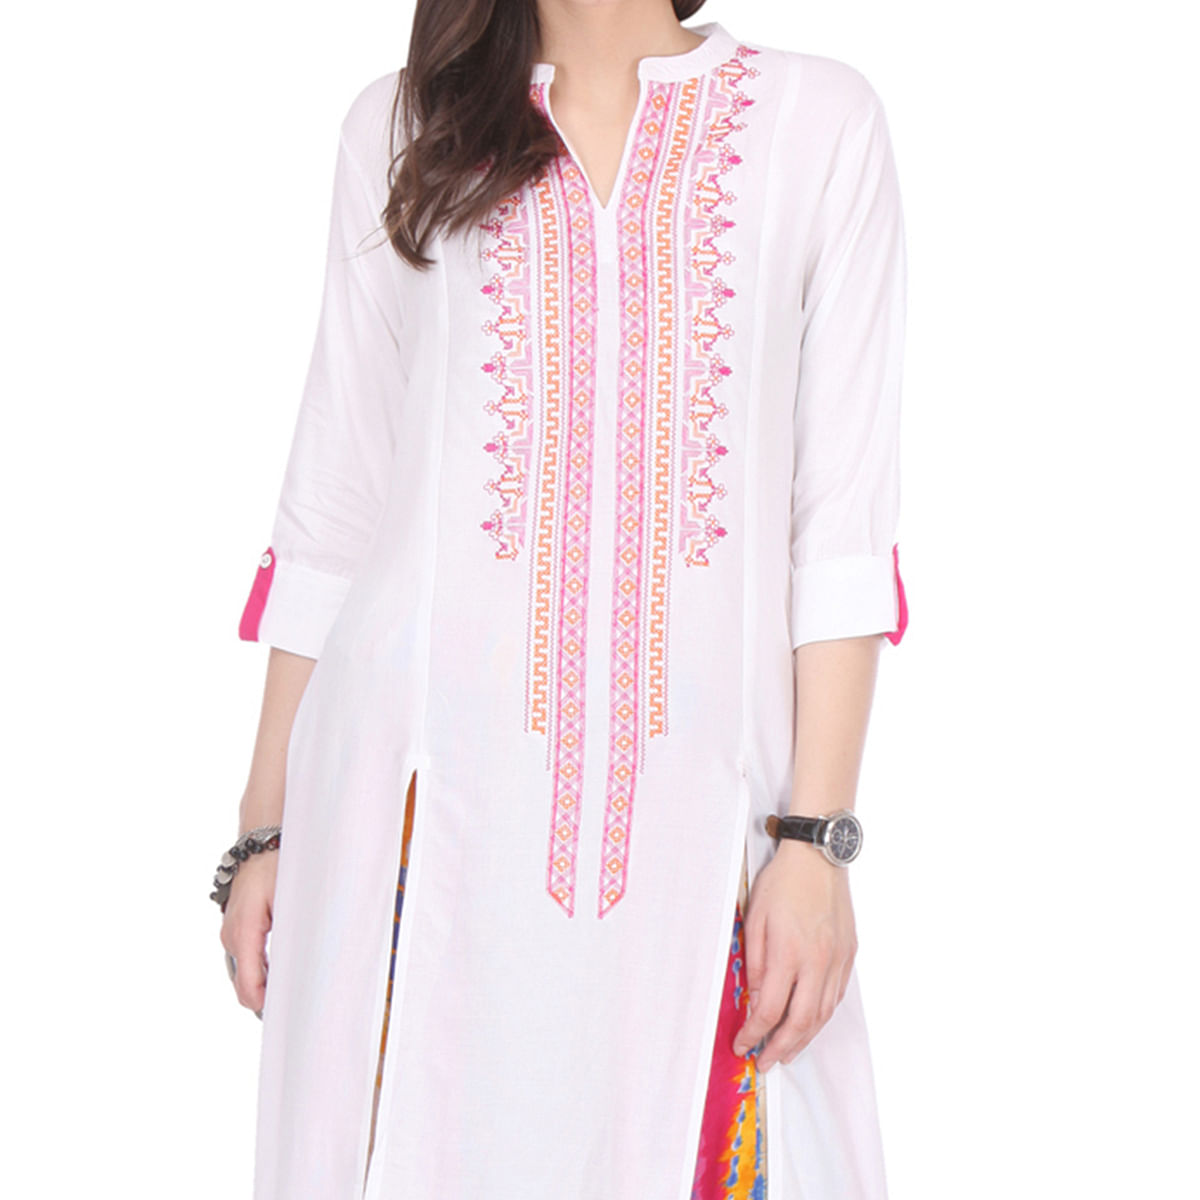 White Casual Kurti - multicolored Printed Palazzo